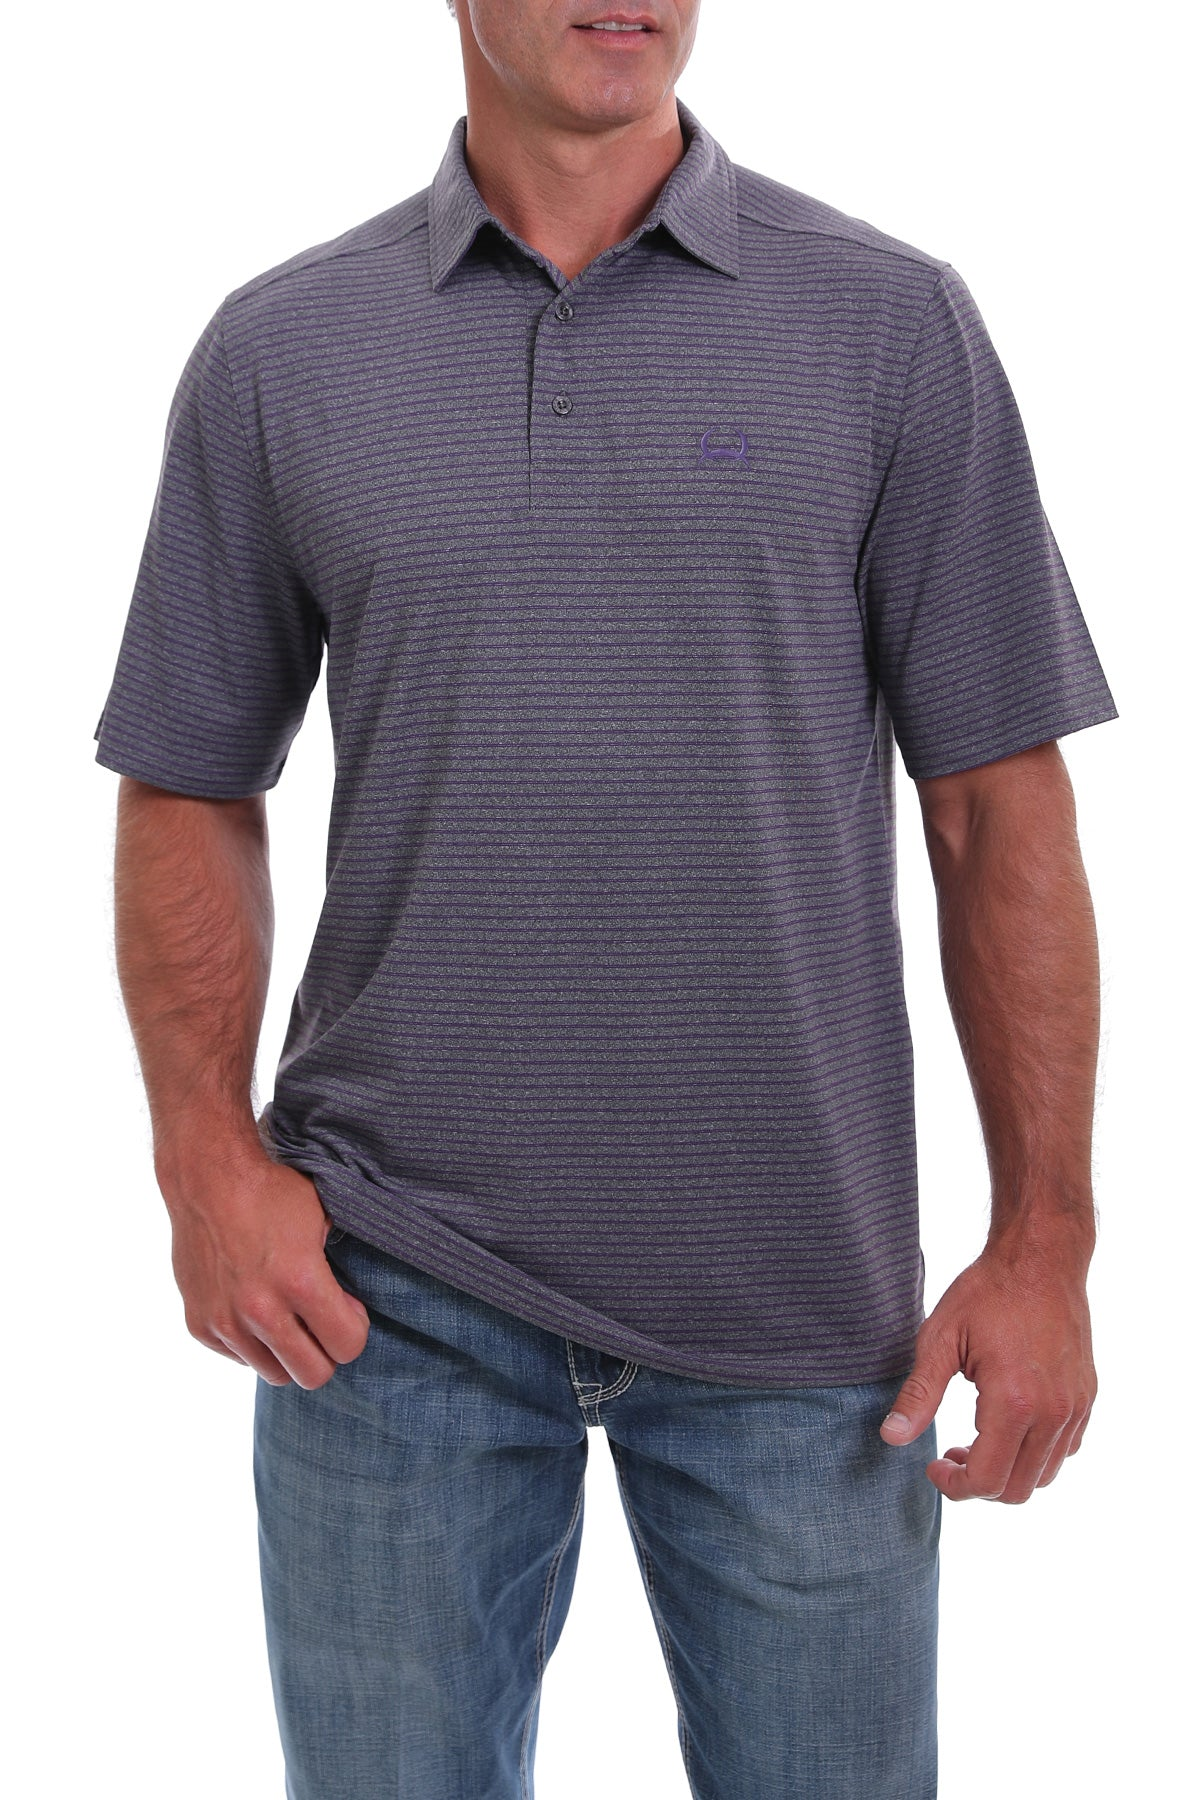 Men's Arenaflex Polo